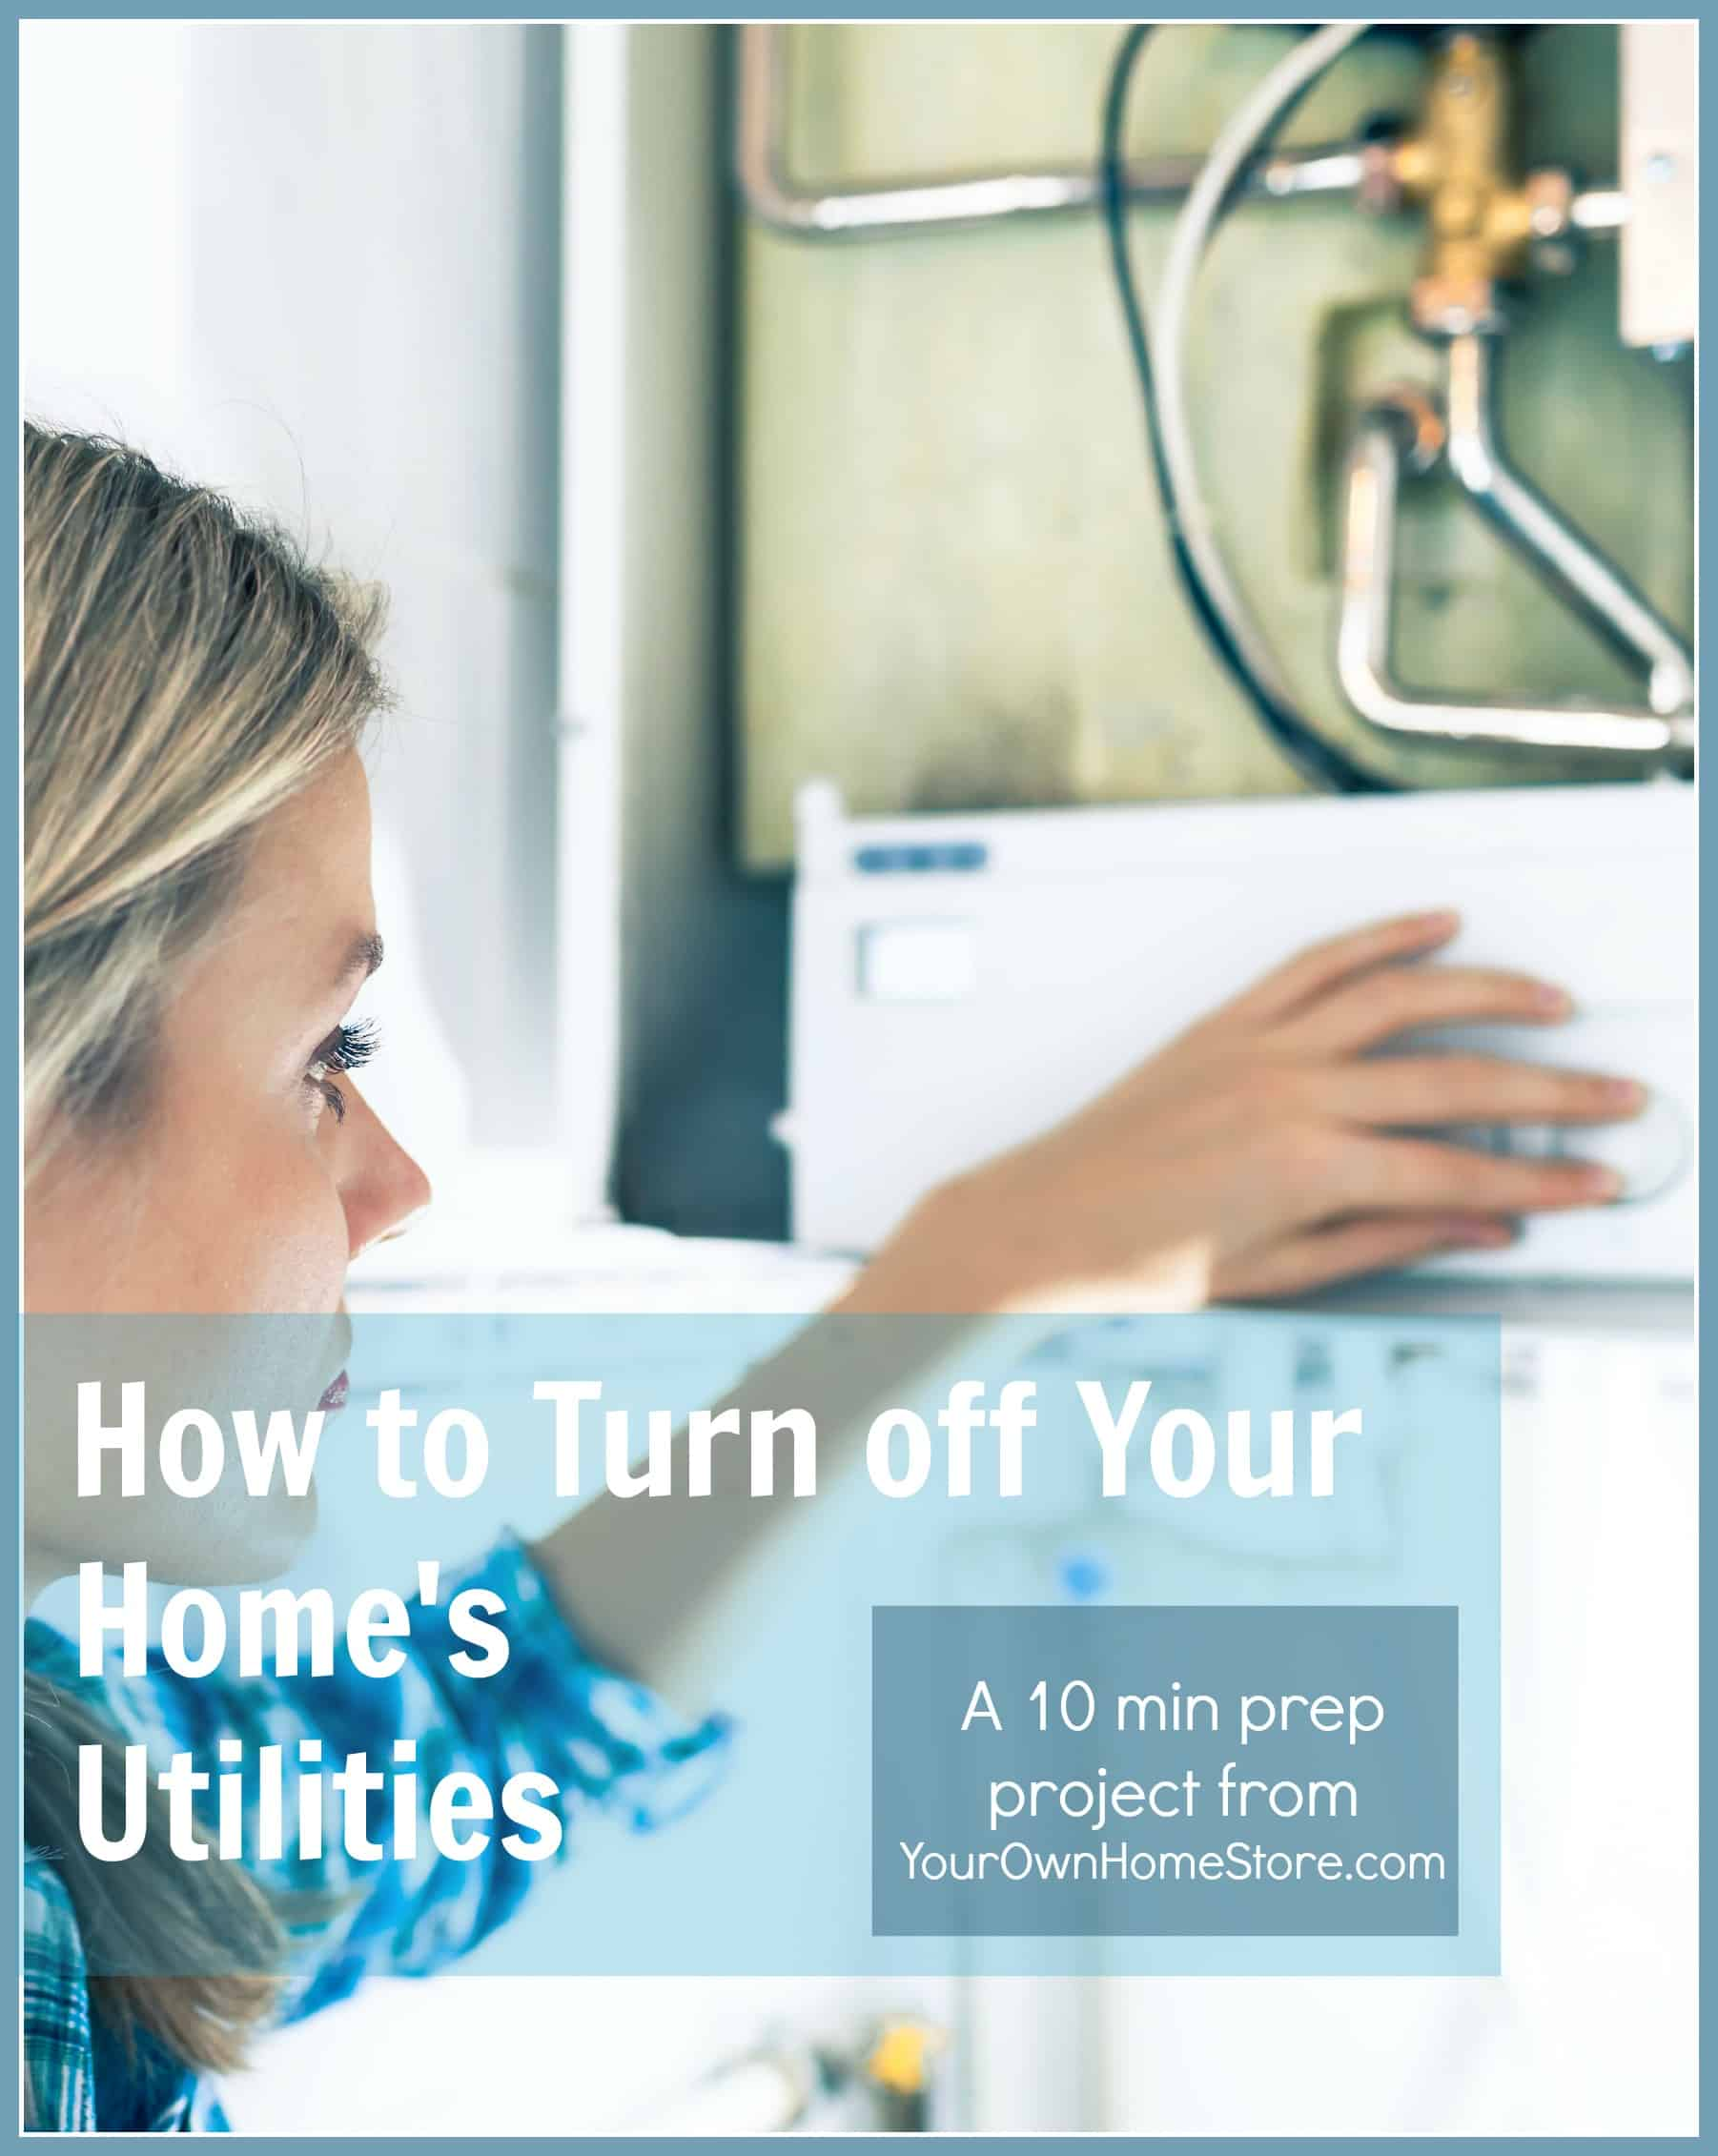 Learn how to turn off utilities – A 10 min Prep Project